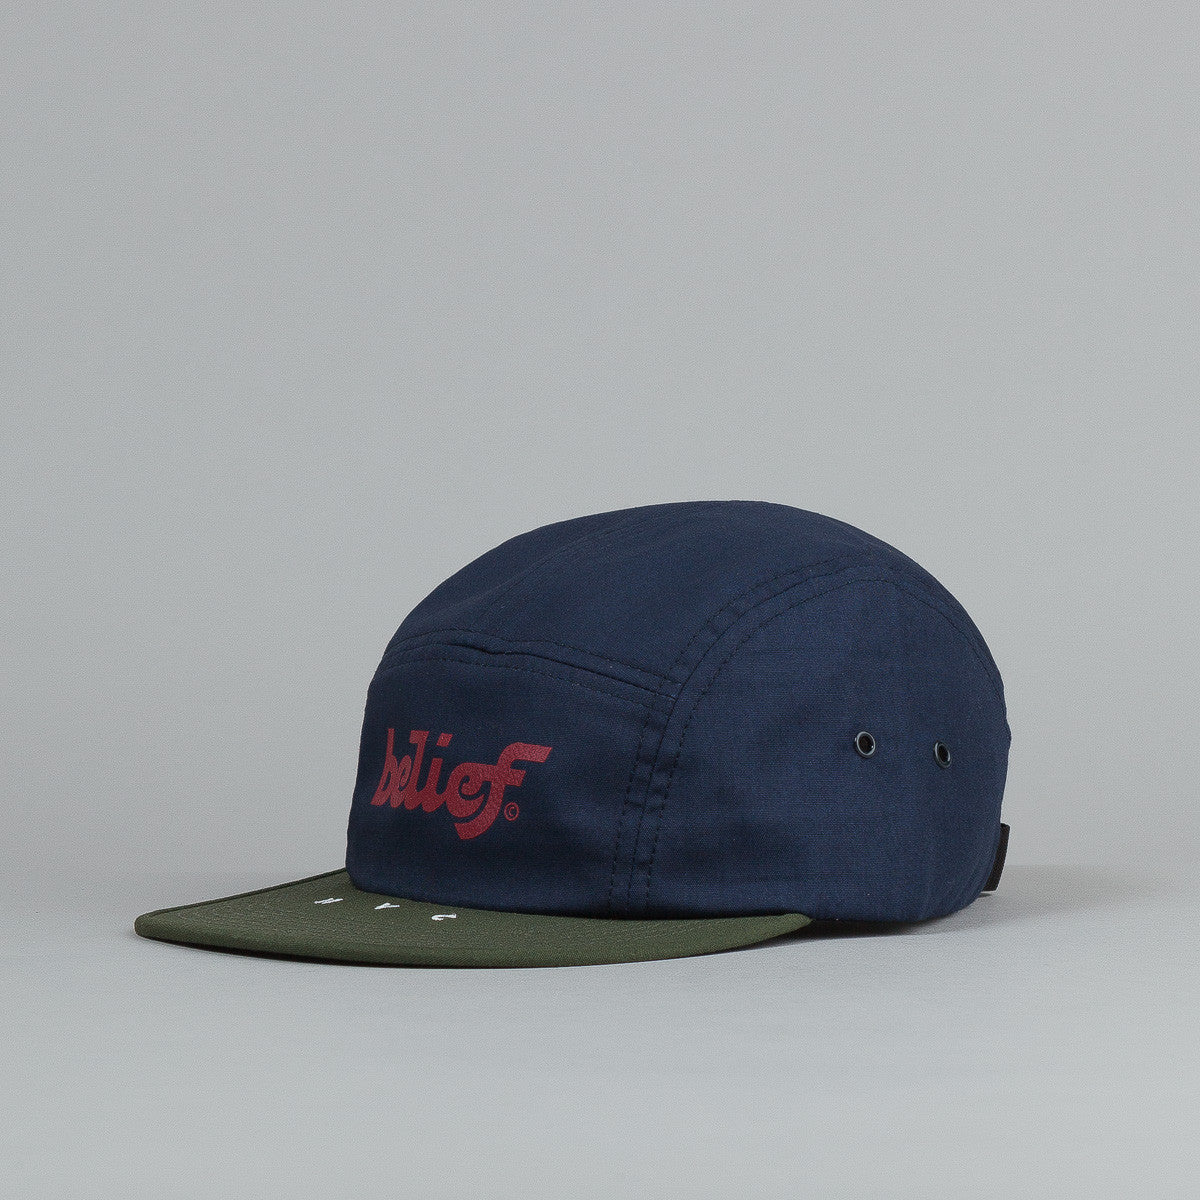 Belief League 5 Panel Cap - Navy / Olive